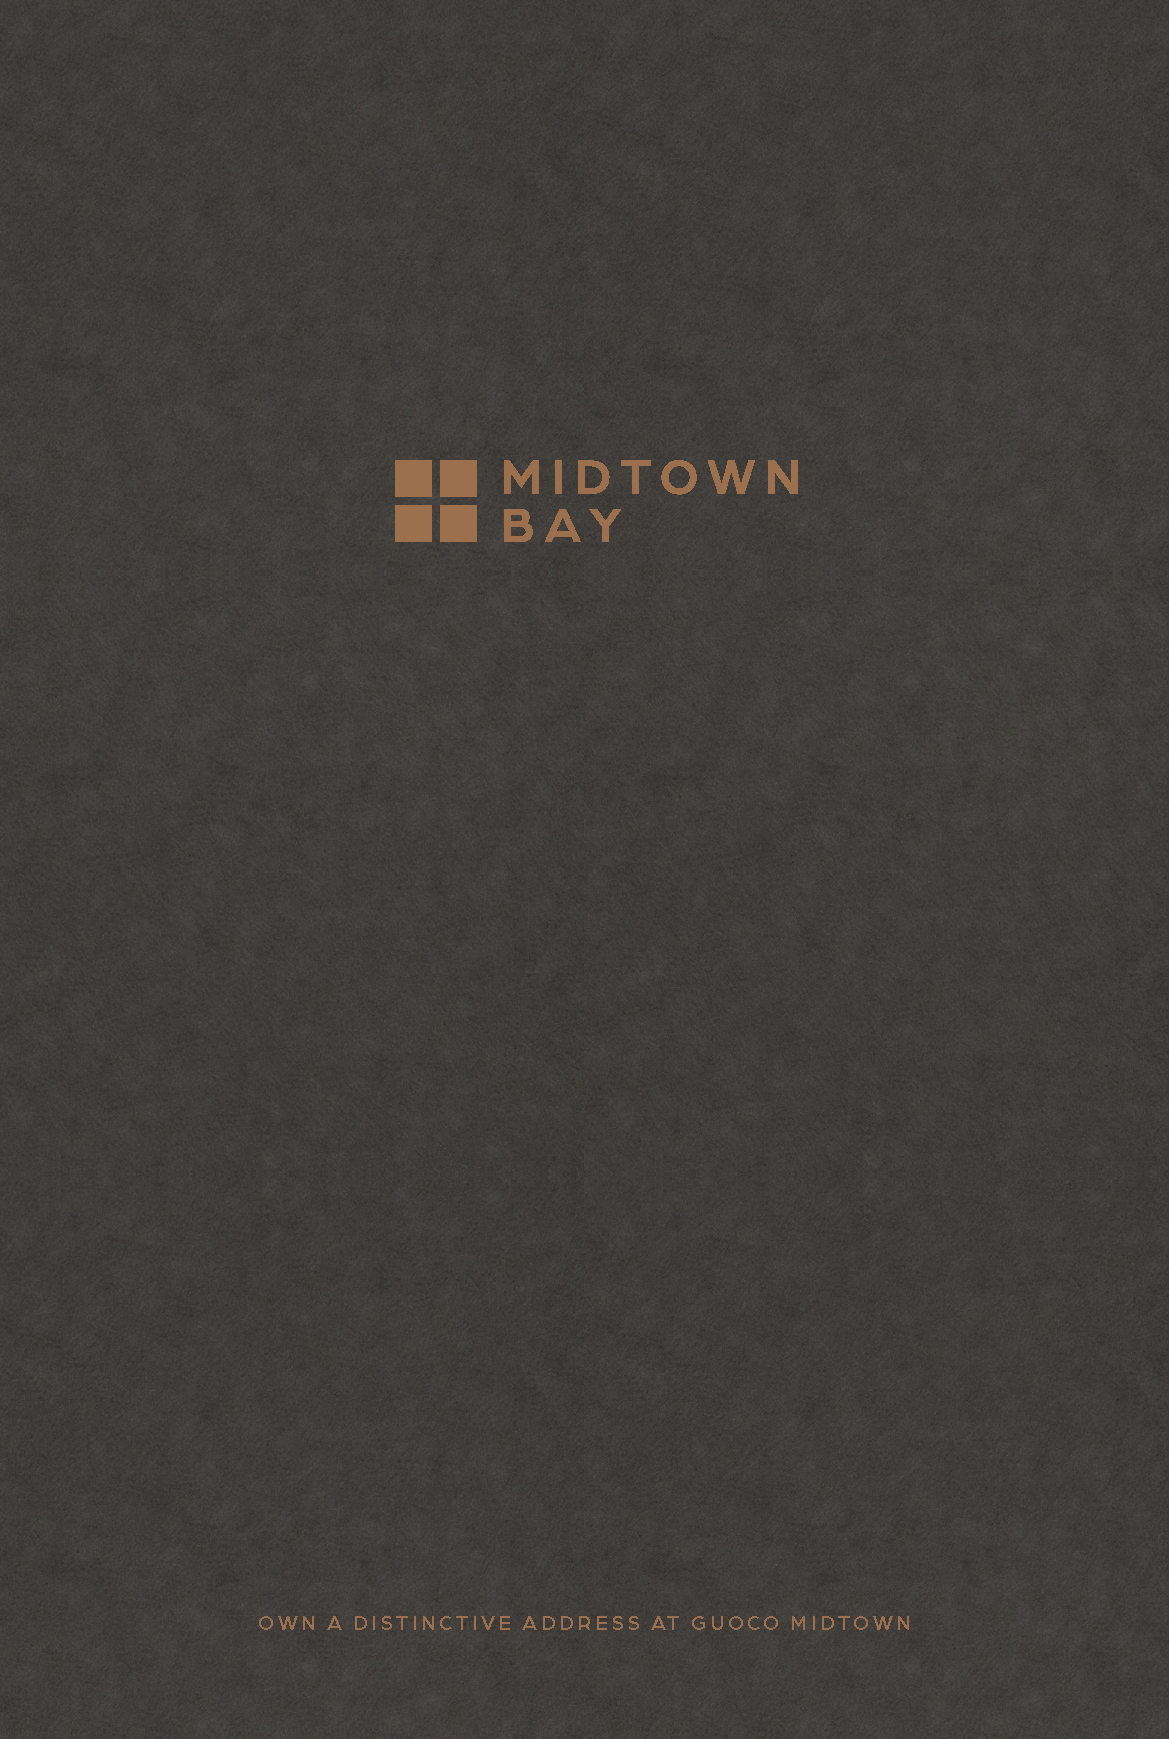 midtown-bay-beach-road-guocoland-e-brochure-cover-singapore